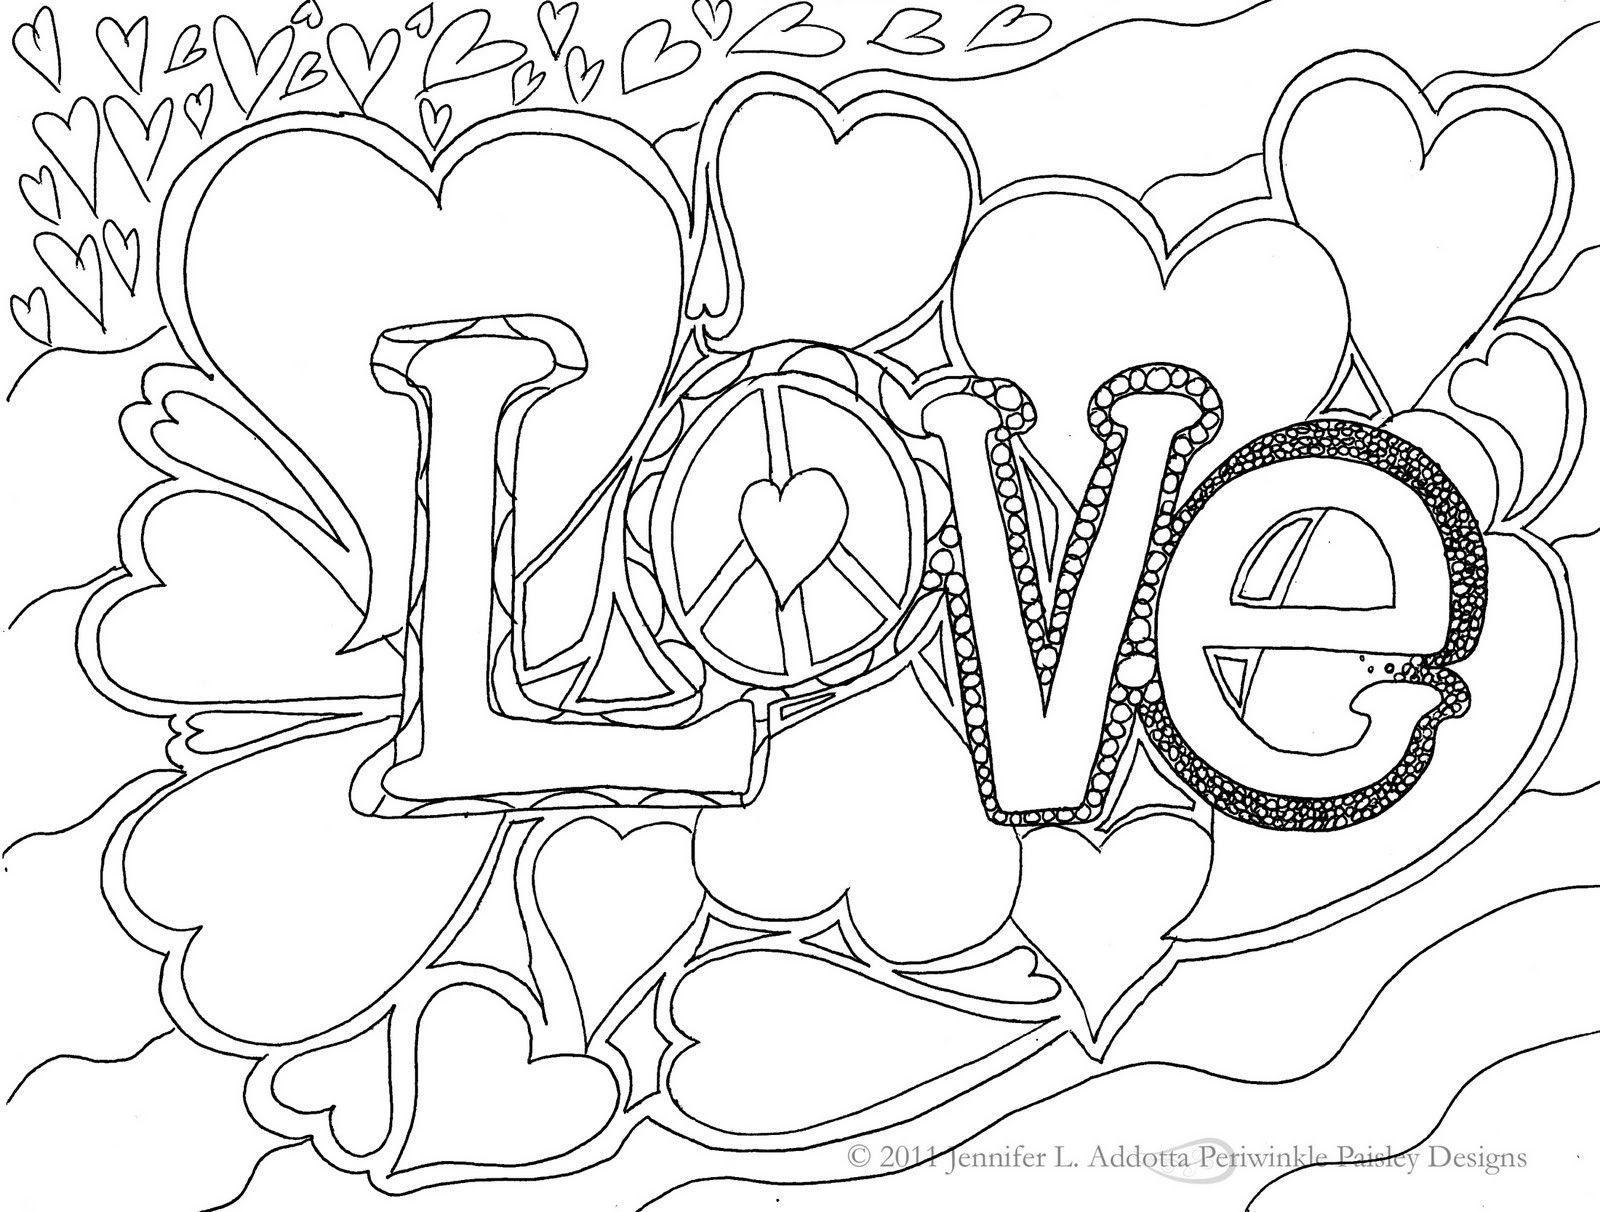 I Miss You Valentines Coloring Pages Printable And Book To Print For Free Find More Online Kids Adults Of